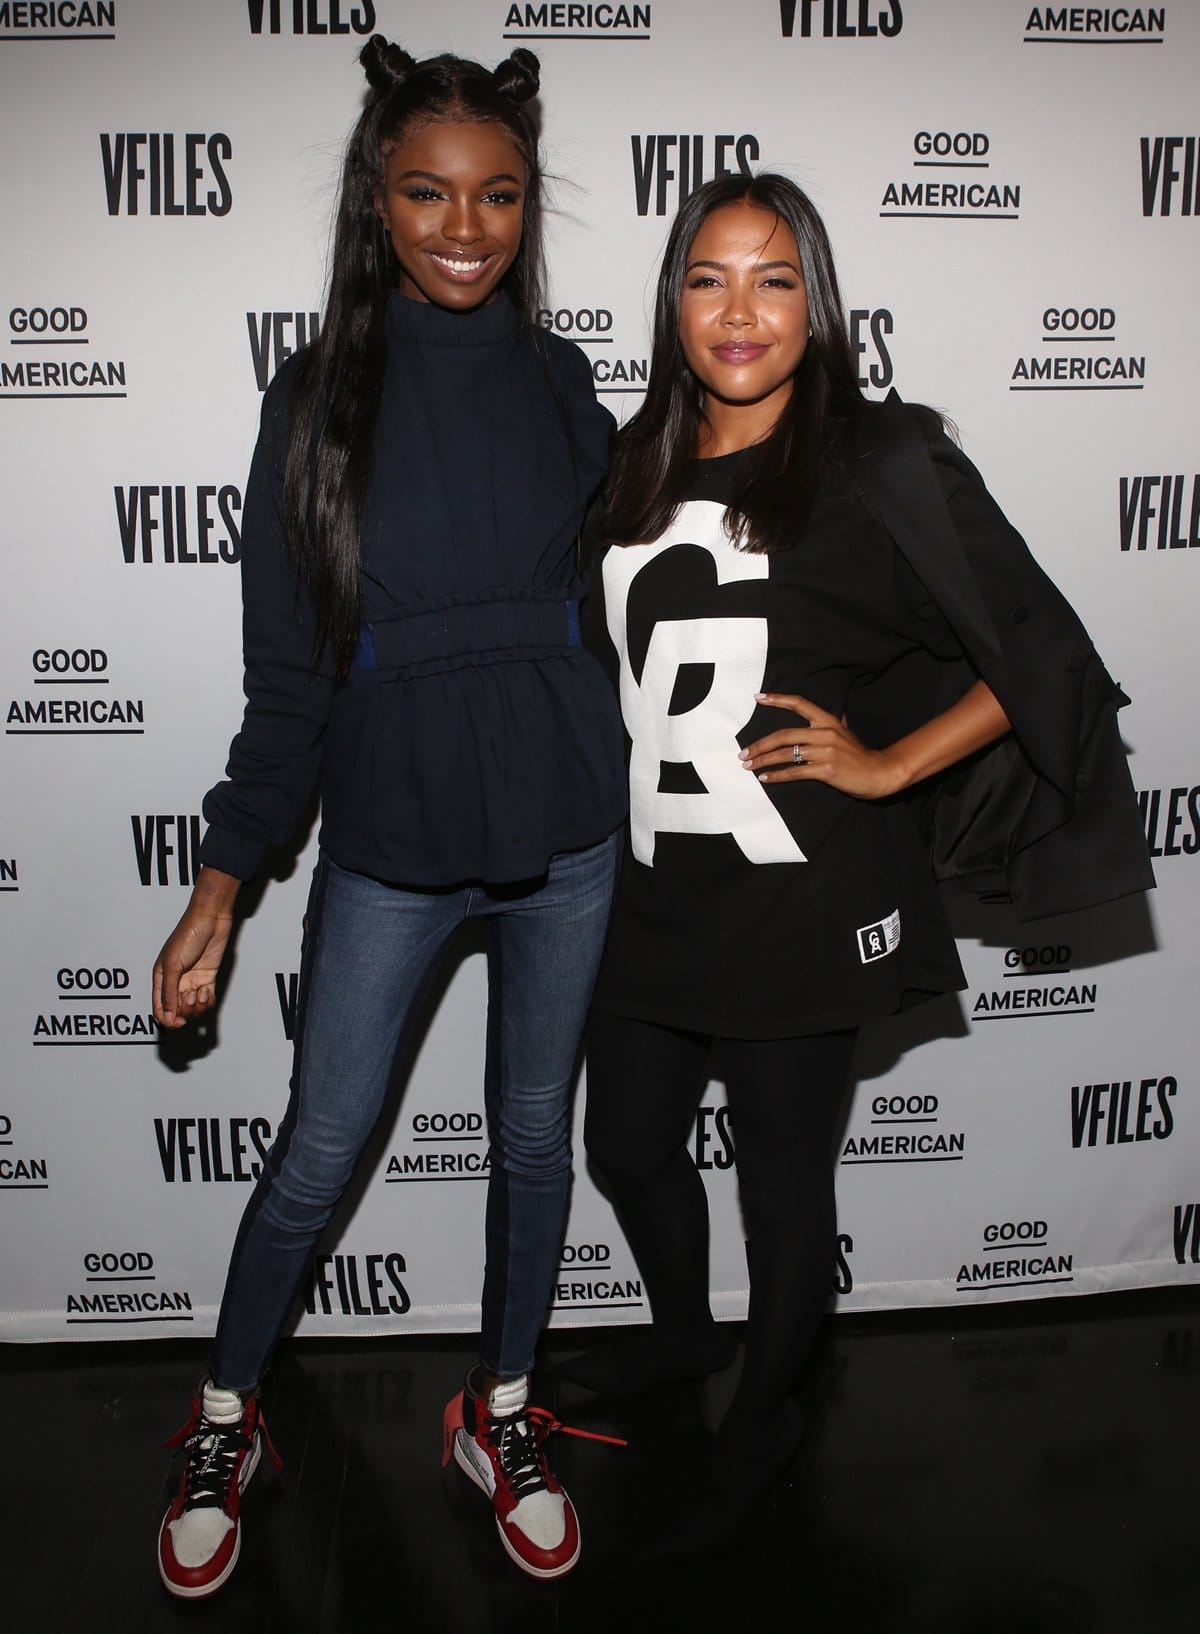 Founder and CEO of Good American Emma Grede (R) posing with fashion designer Leomie Anderson